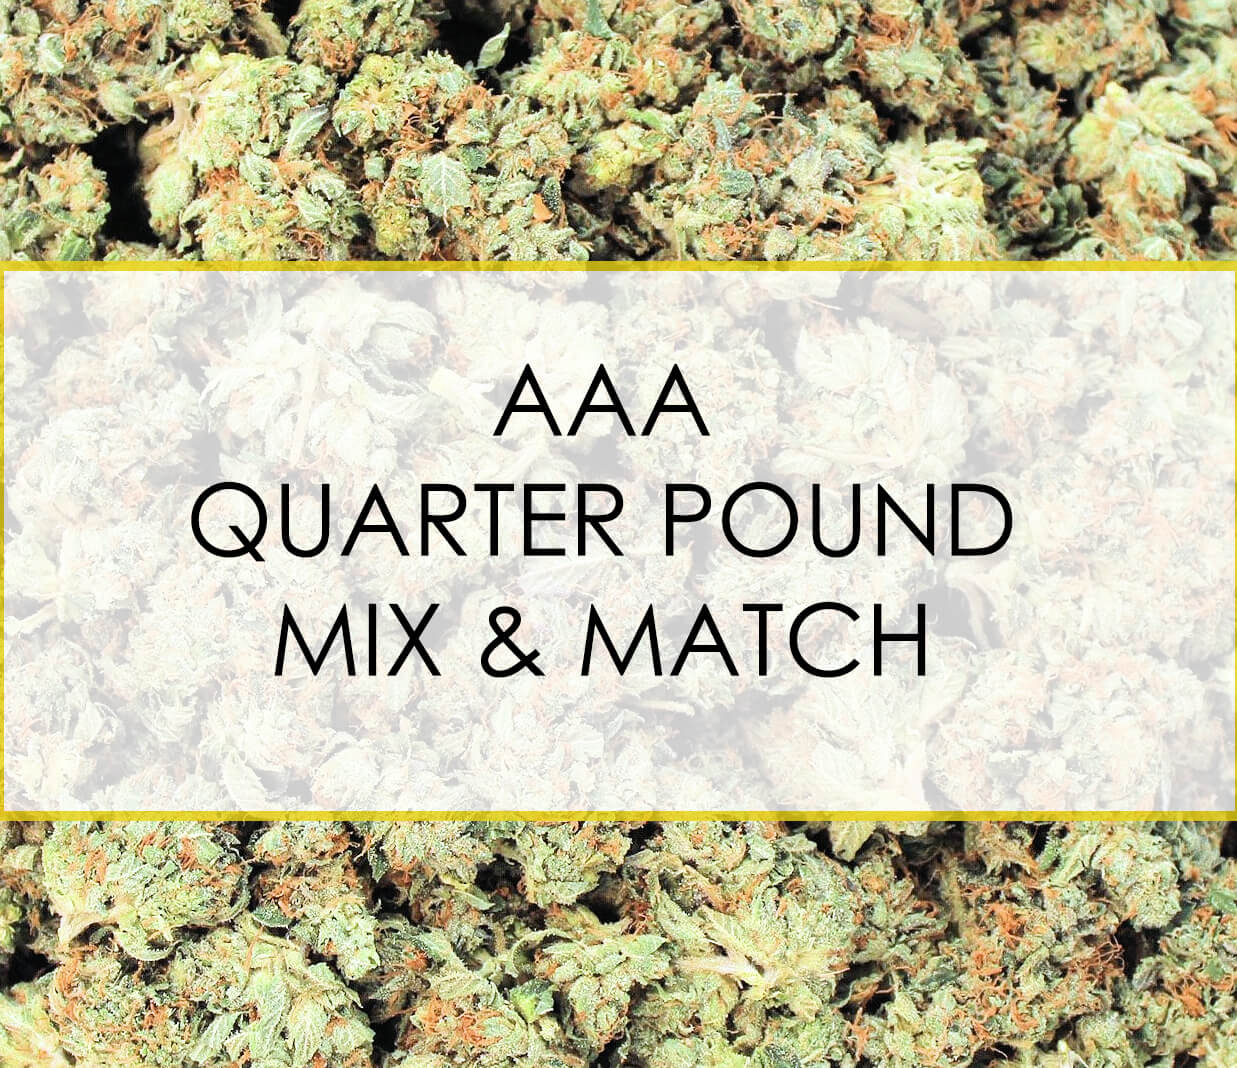 AAA Quarter Pound Mix and Match